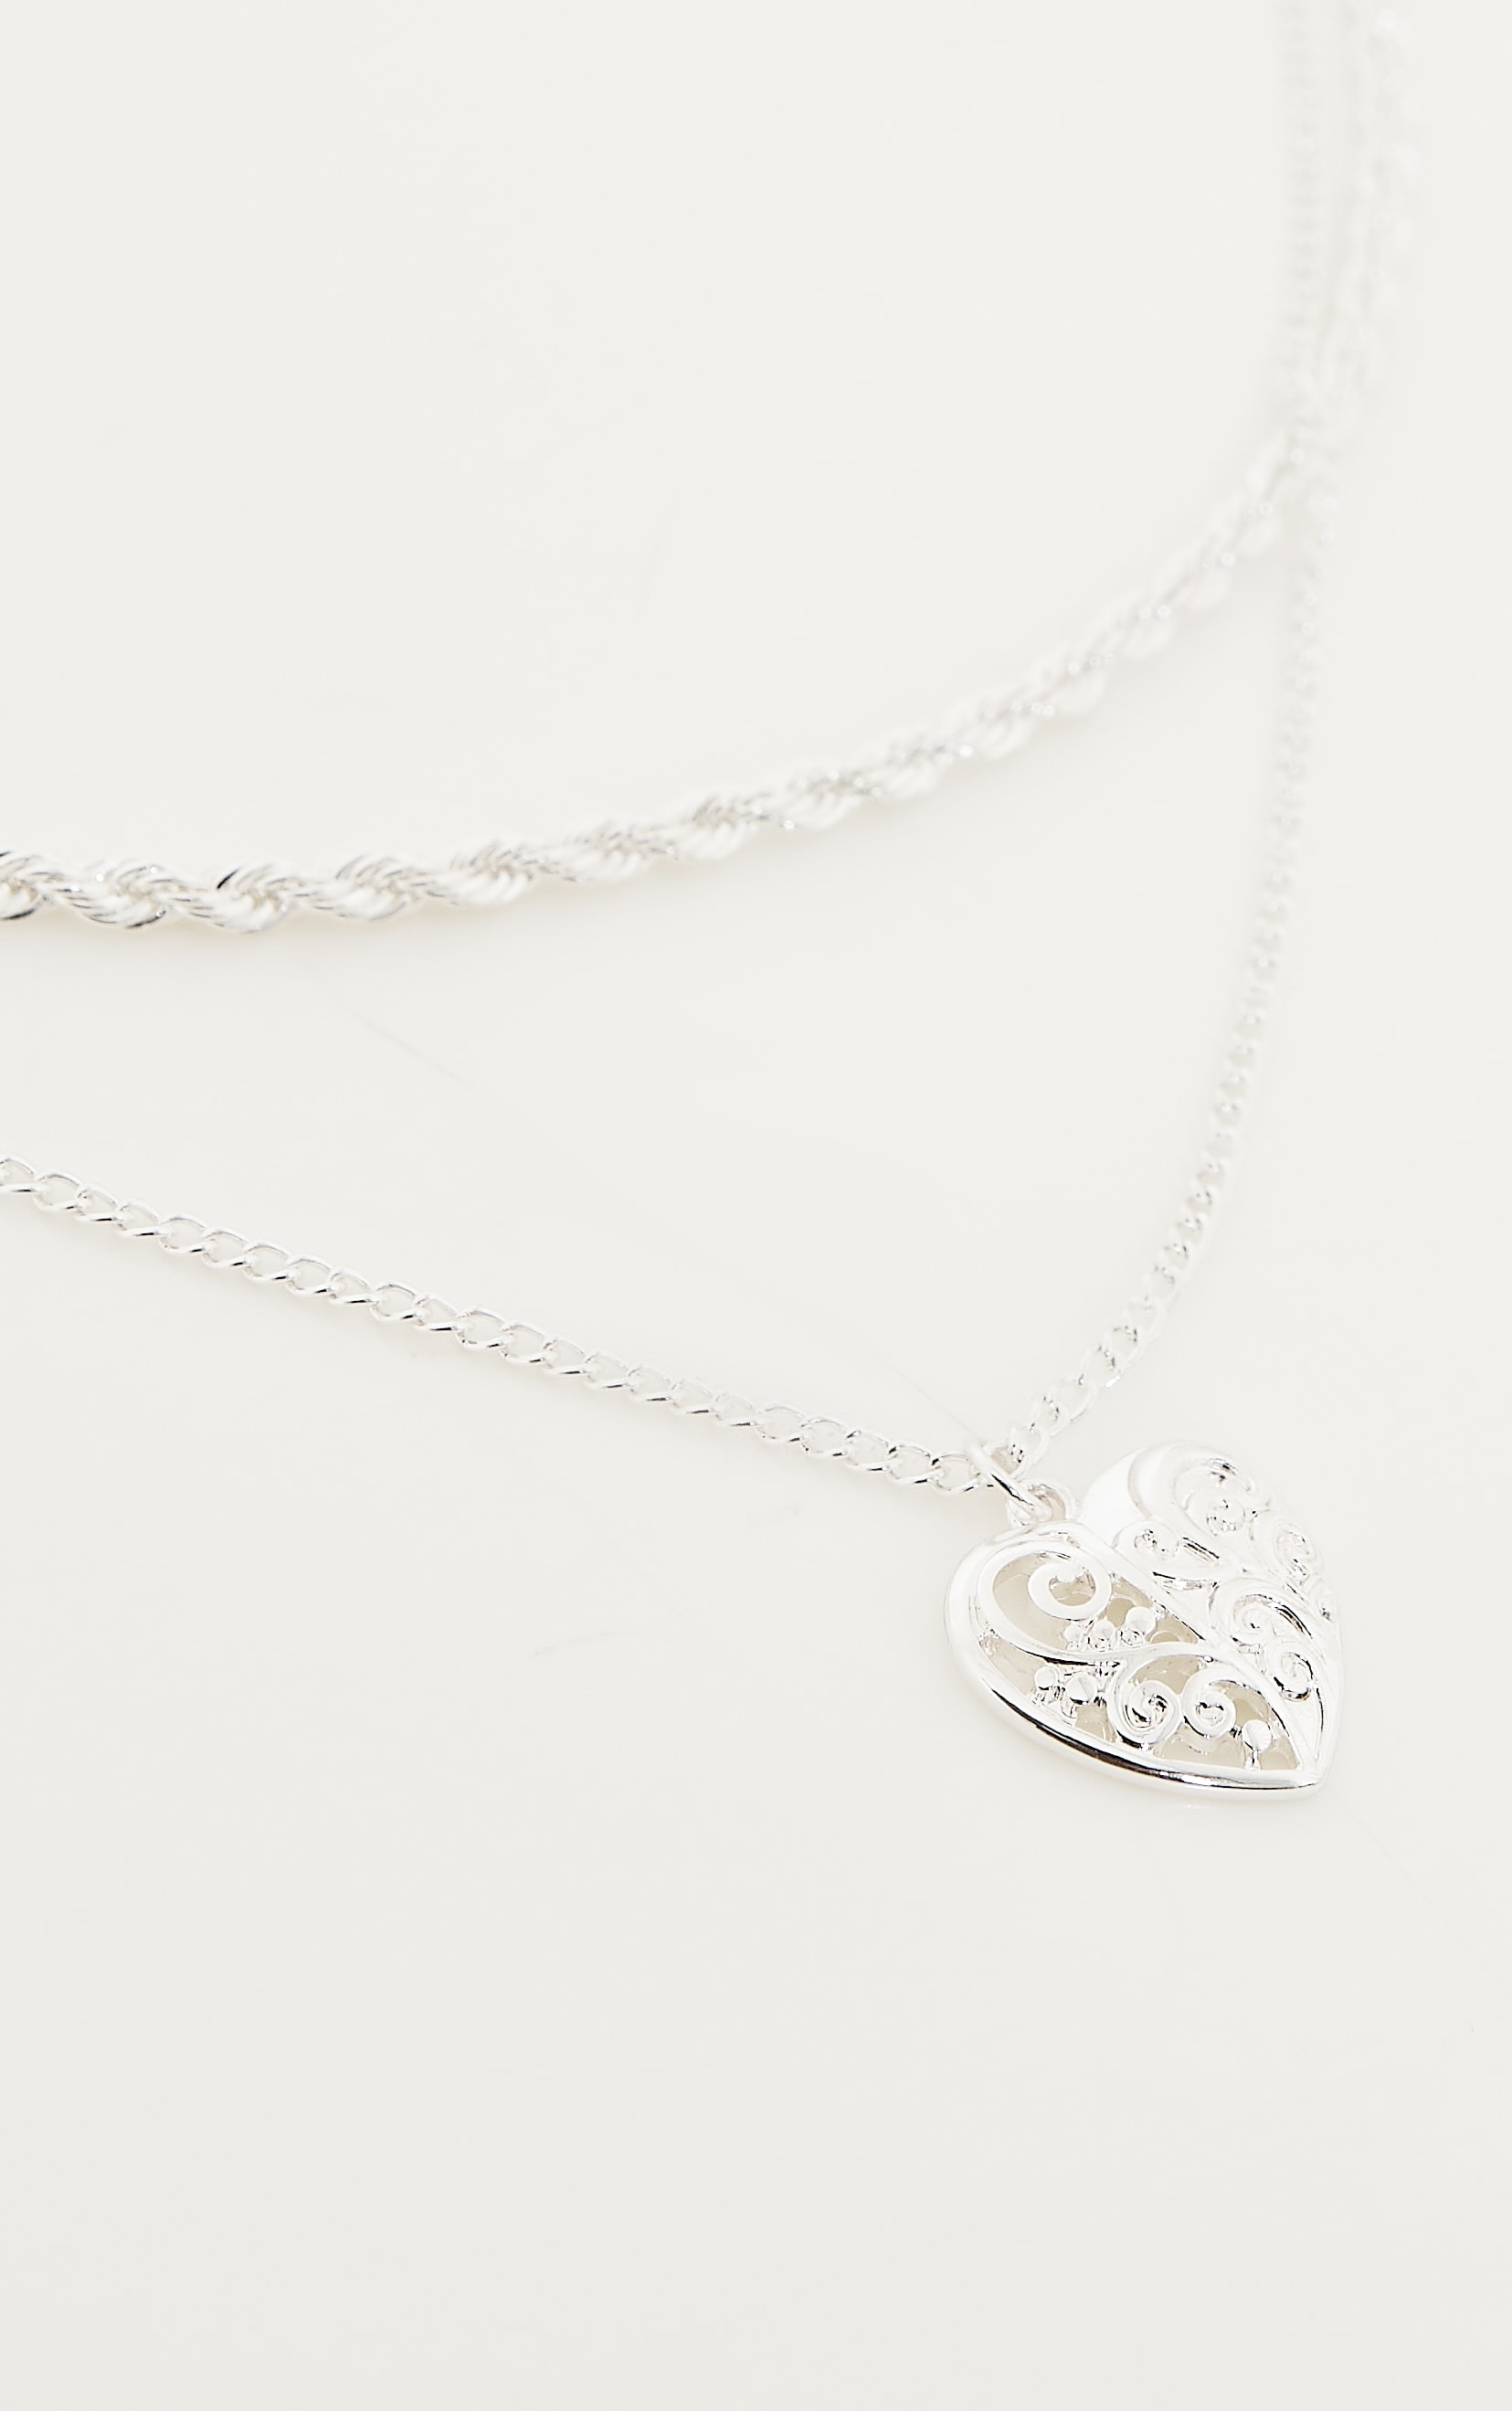 Silver Rope And Heart Charm Layering Necklace 4